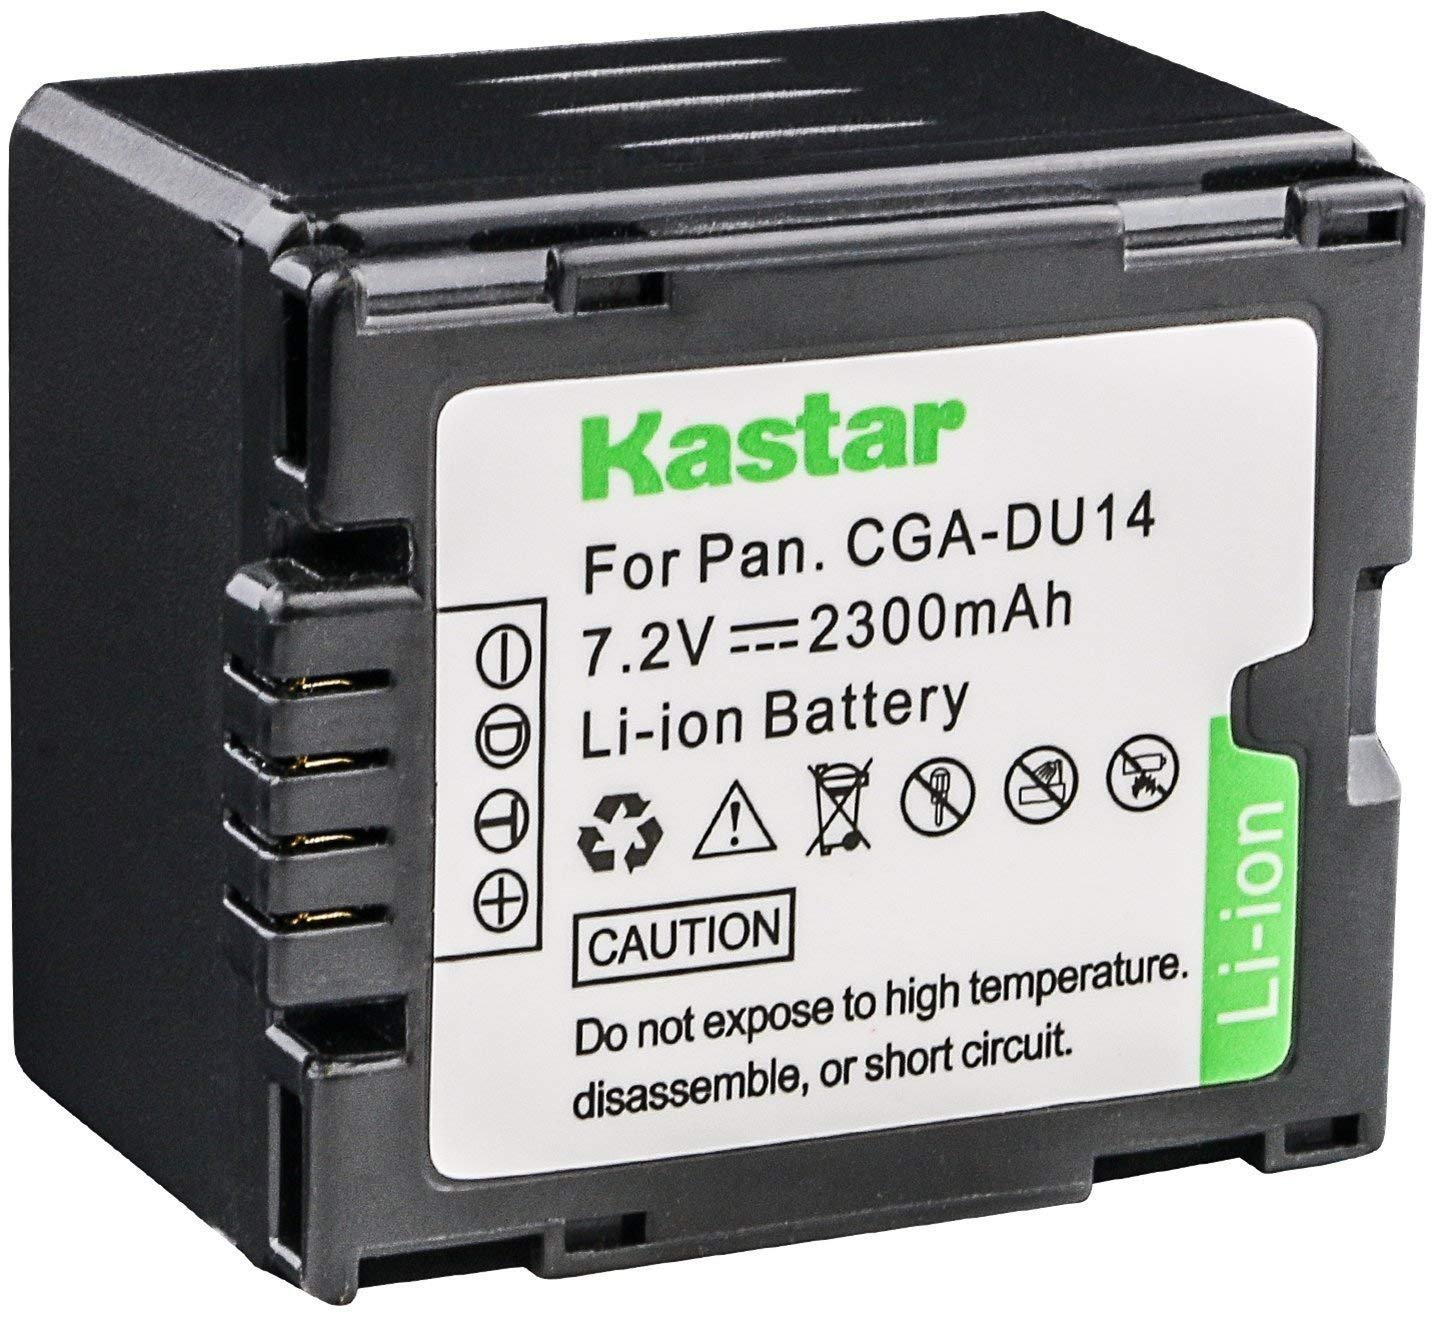 Kastar CGA-DU14 Battery Replacement for Panasonic CGA-DU06 CGA-DU07 CGA-DU12 CGA-DU14 CGA-DU21 and Panasonic NV-GS NV-MX PV-GS VDR-D VDR-M Series Camcorder